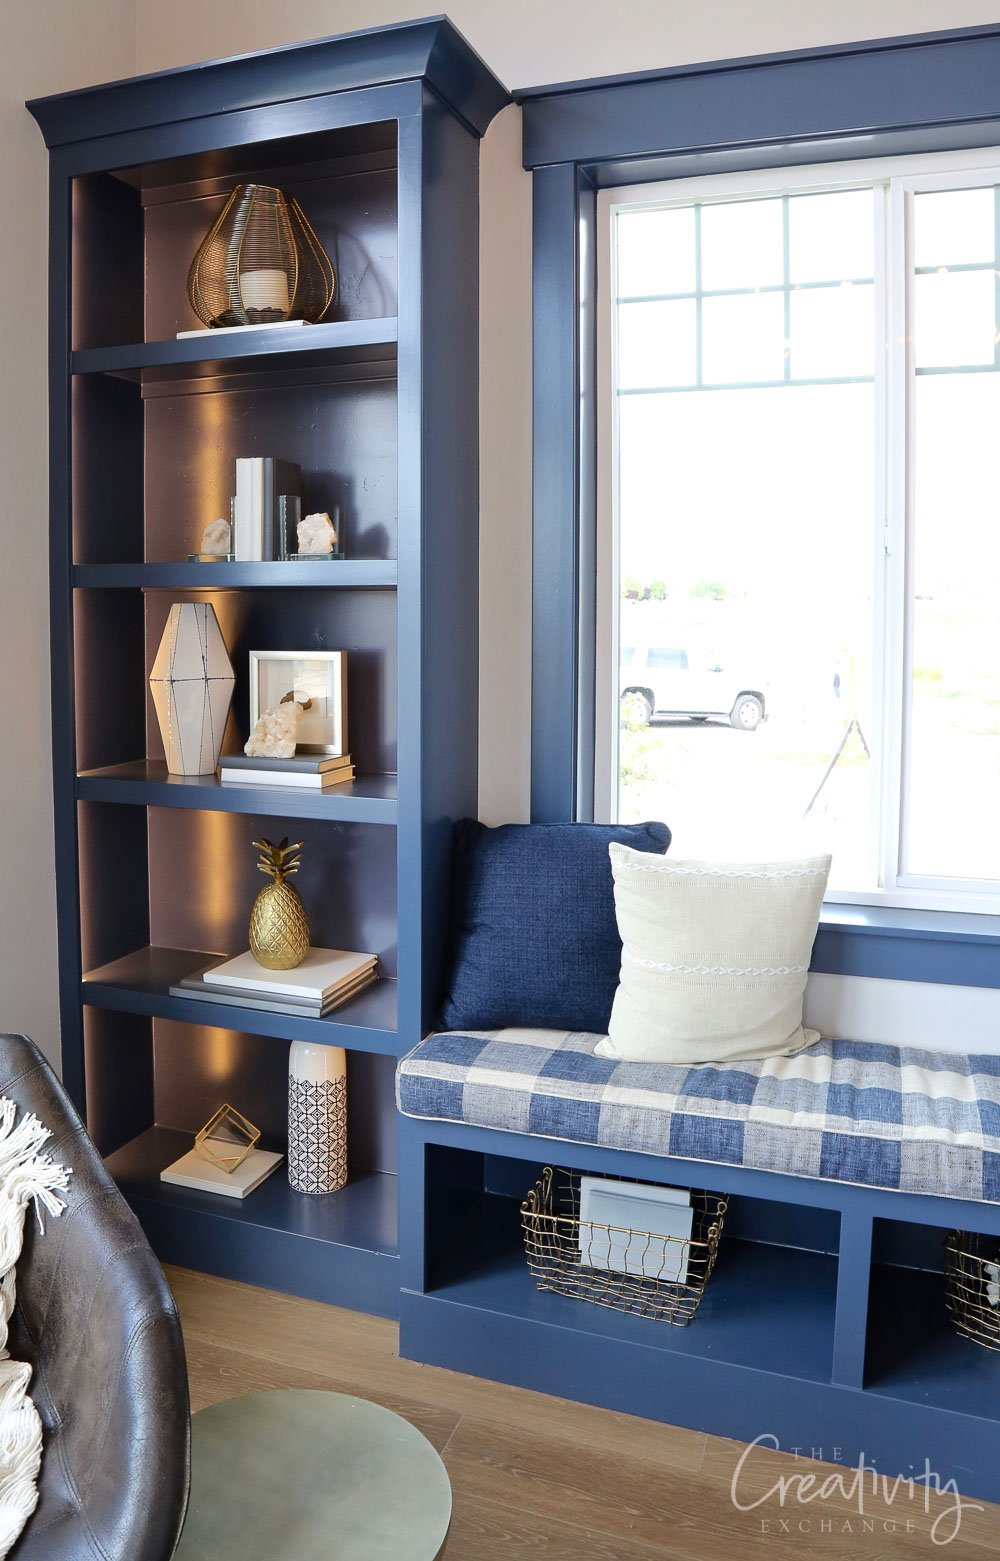 Blue built-in cabinetry